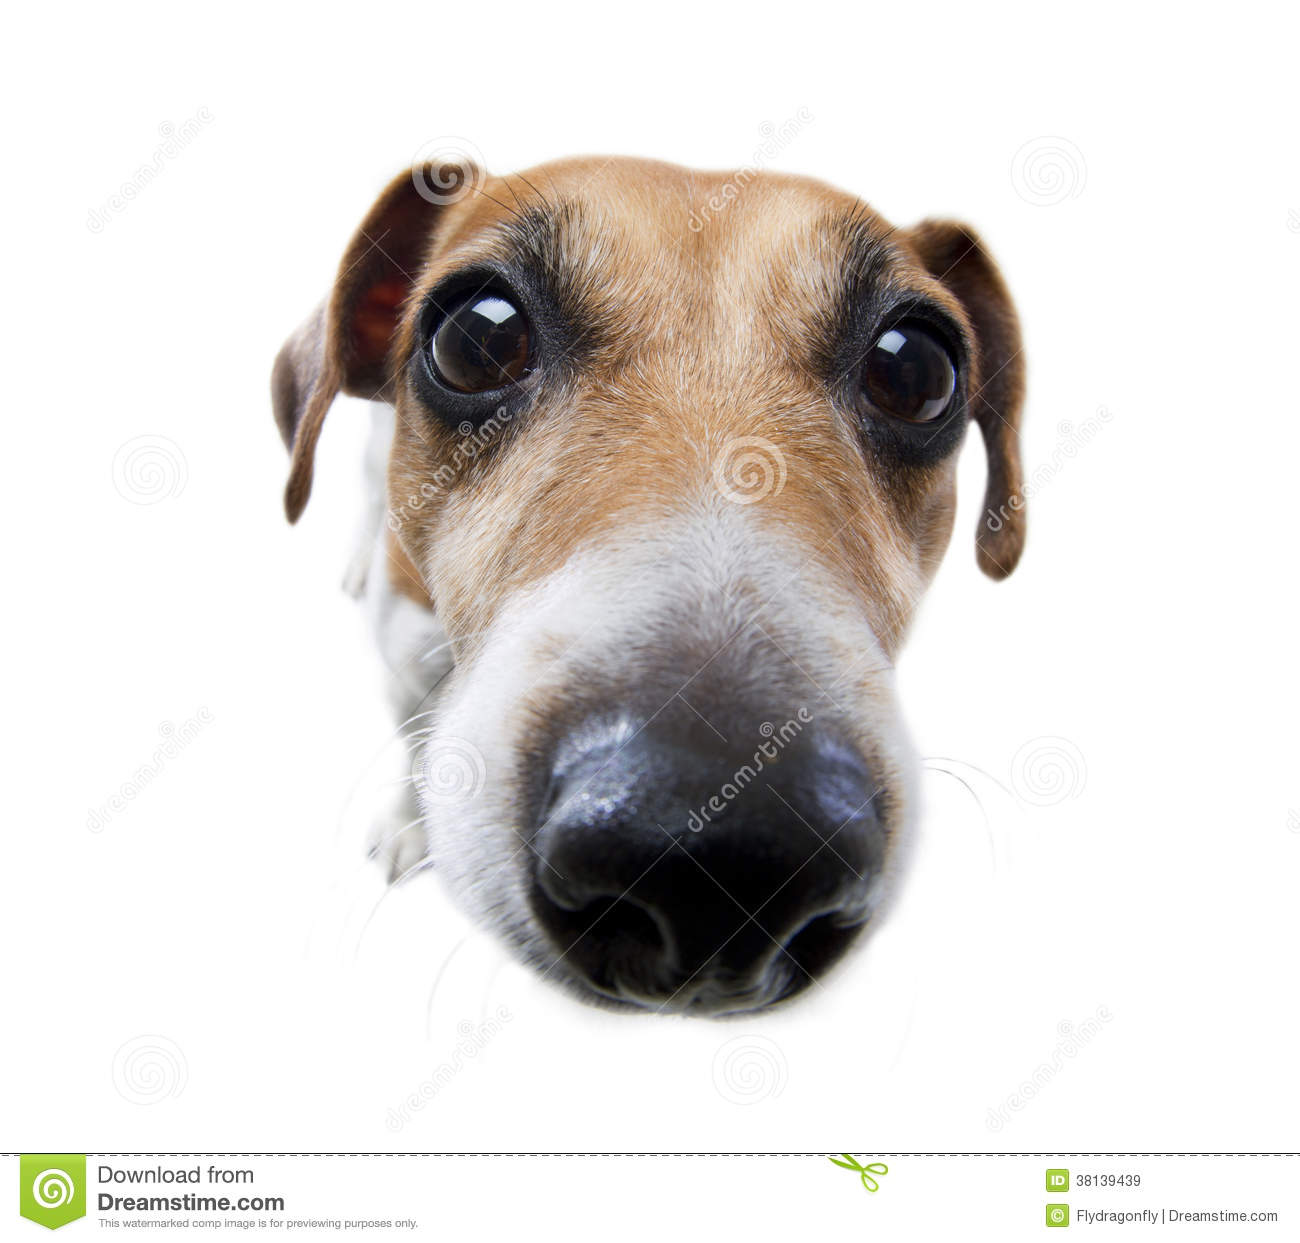 https://thumbs.dreamstime.com/z/funny-dog-nose-38139439.jpg